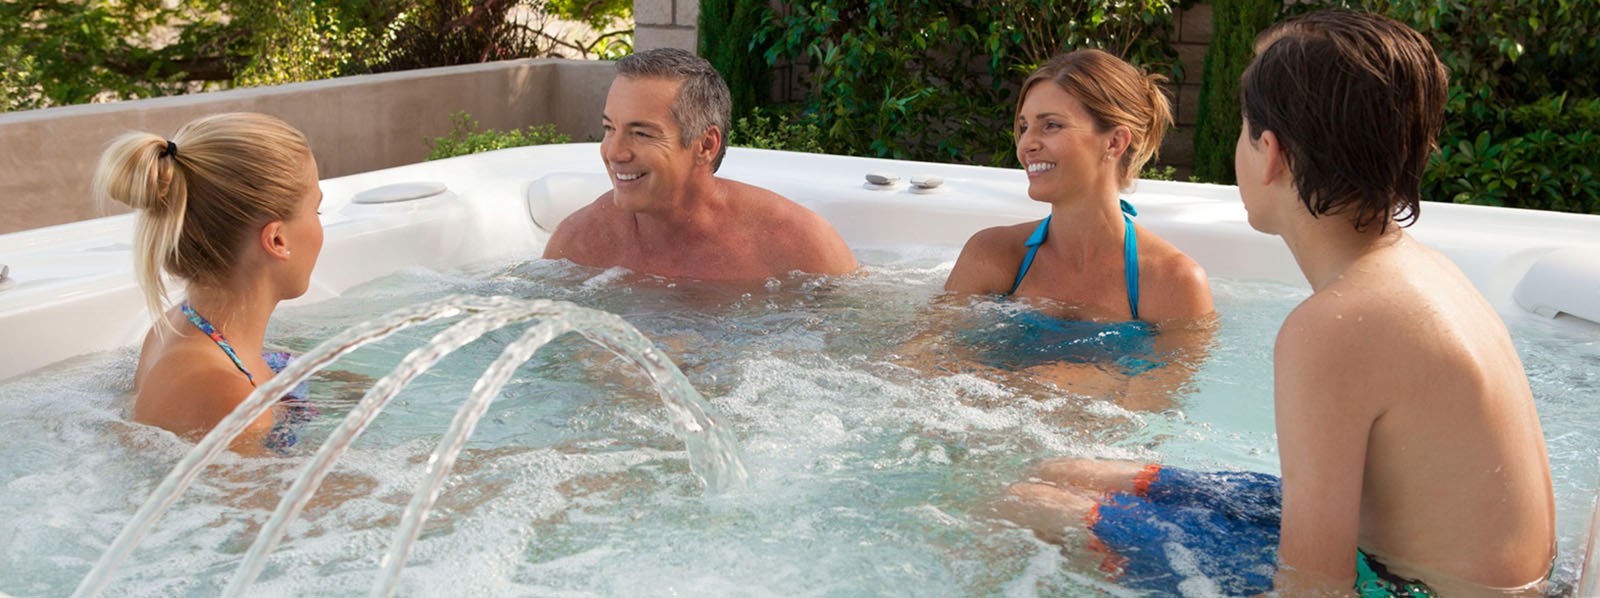 Grandee-7person-hottub-1600x598.jpg